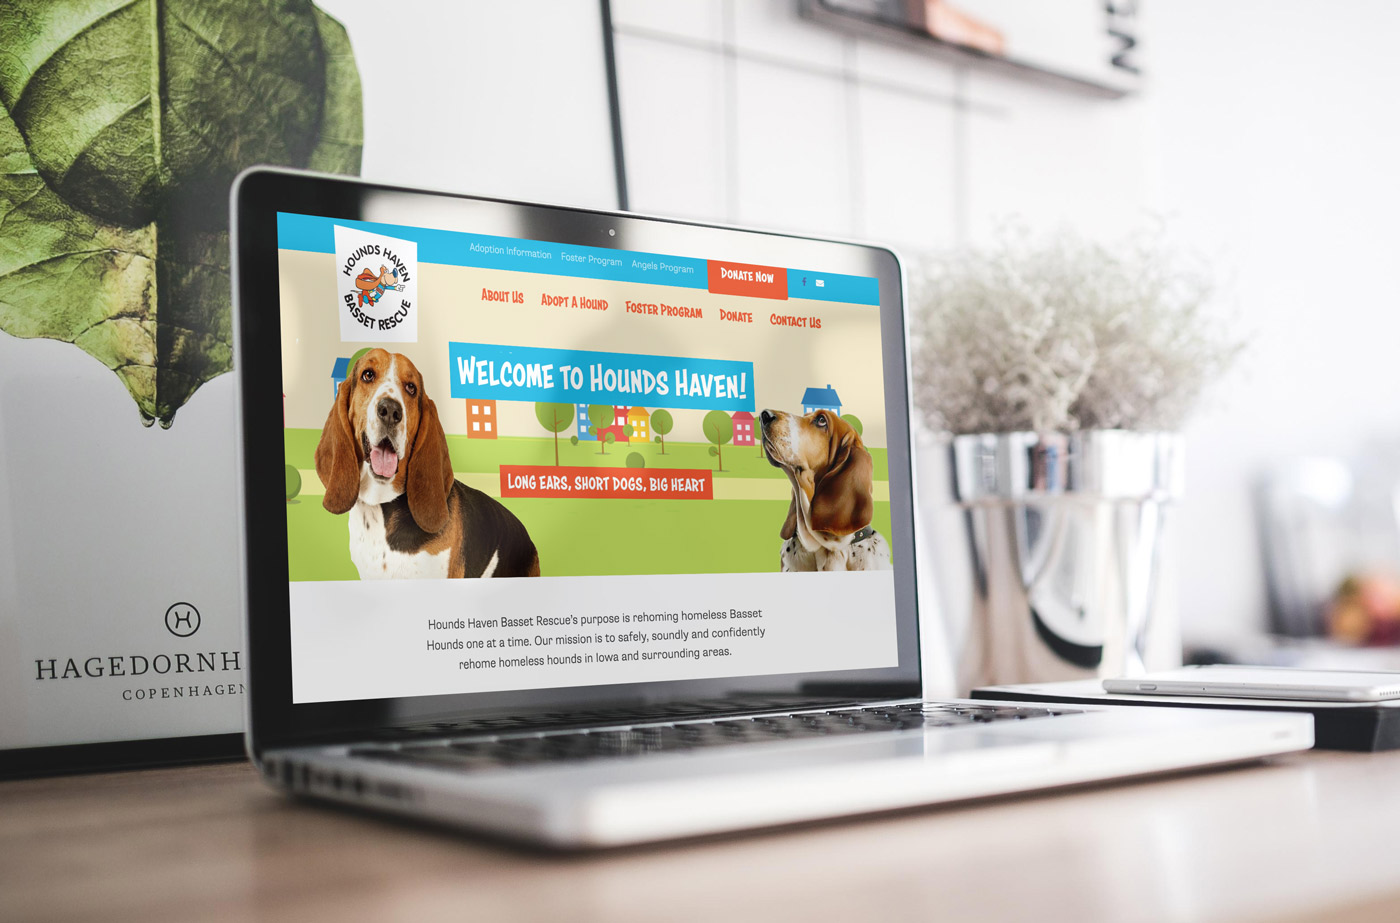 Hounds Haven Basset Rescue